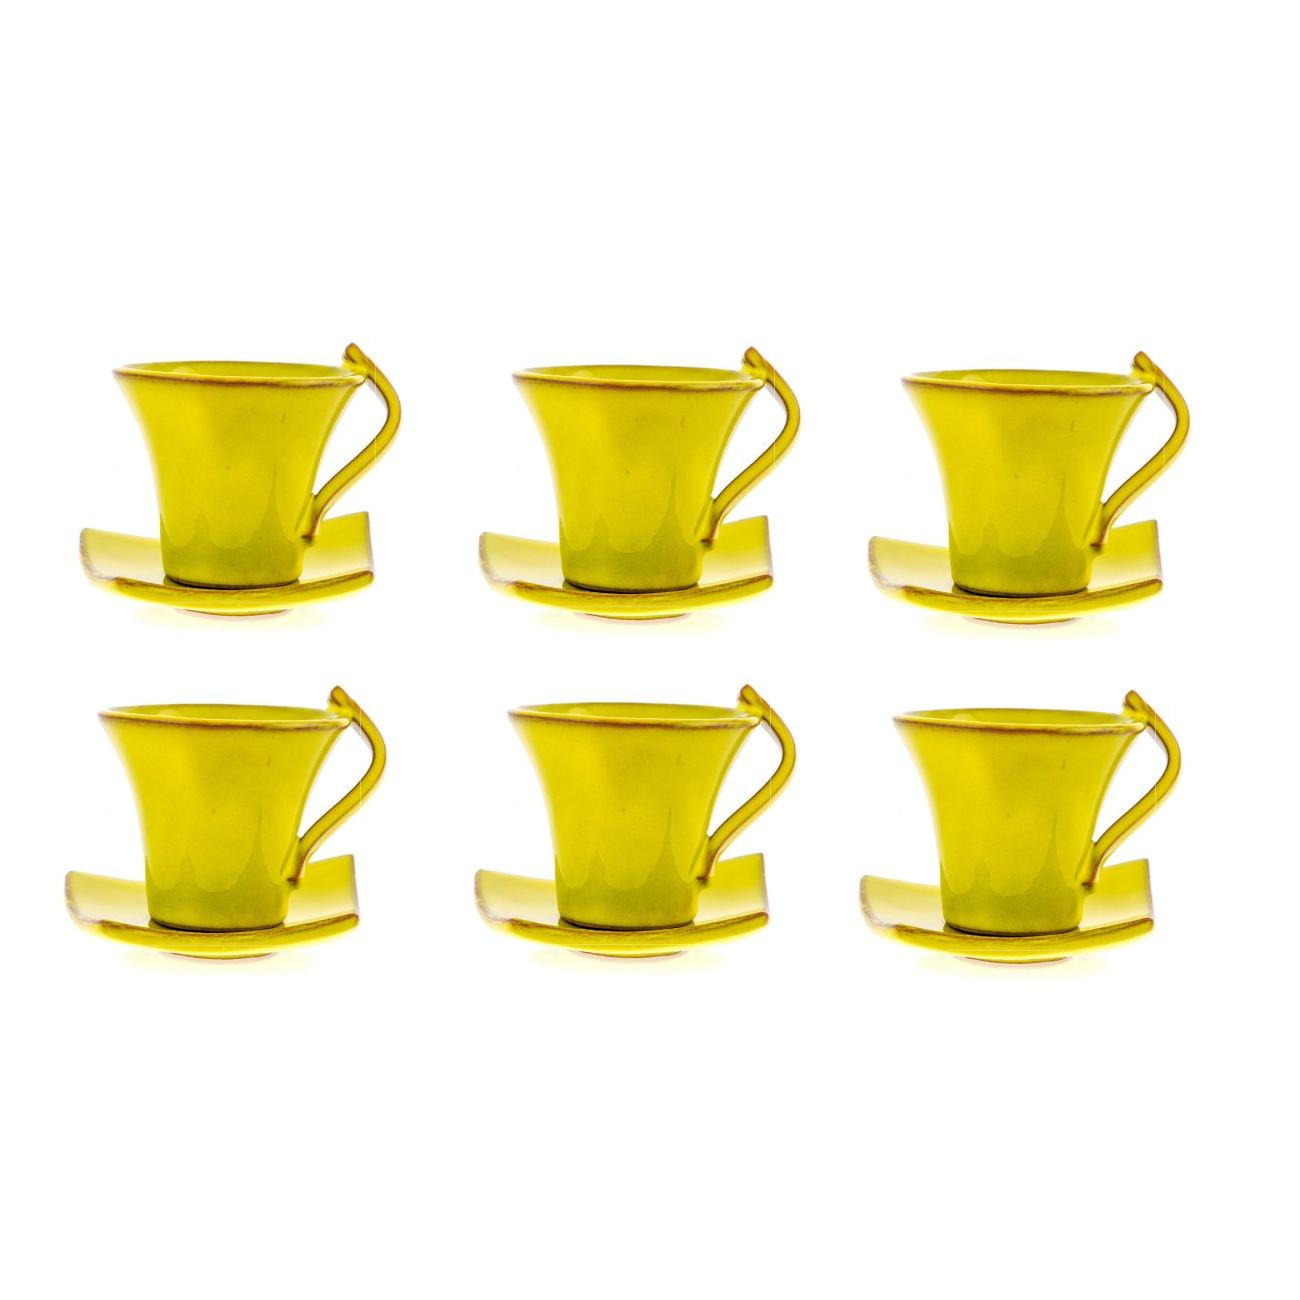 Small Coffee Cups And Saucers Mug Or Cup Saucer Set Of 6 Modern Handmade Ceramic Yellow 4 7 12cm Small